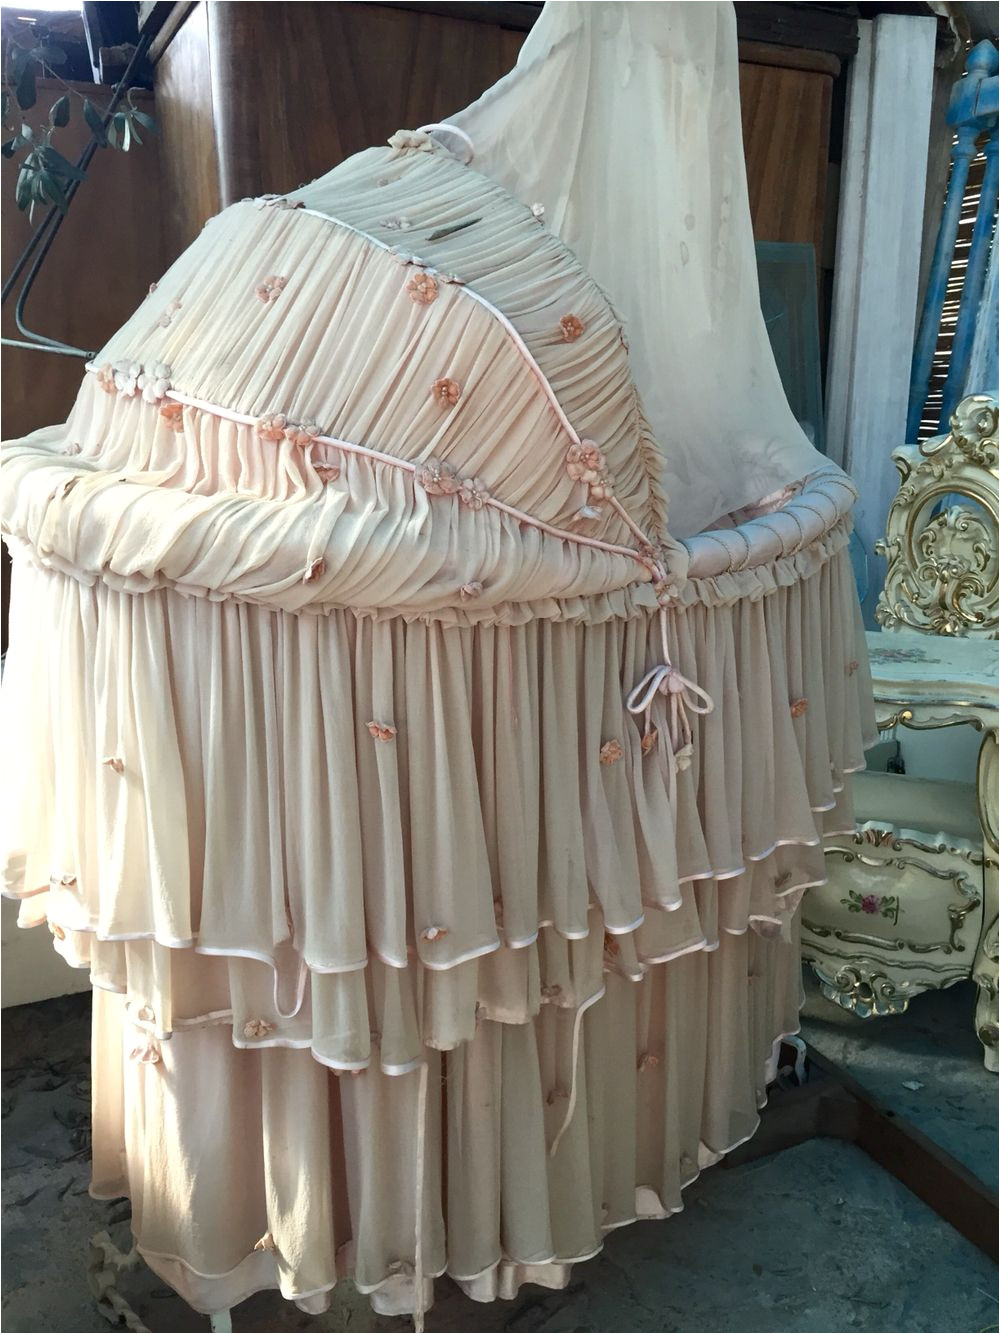 the most beautiful vintage bassinet i ve seen complete with silk bedding contact me